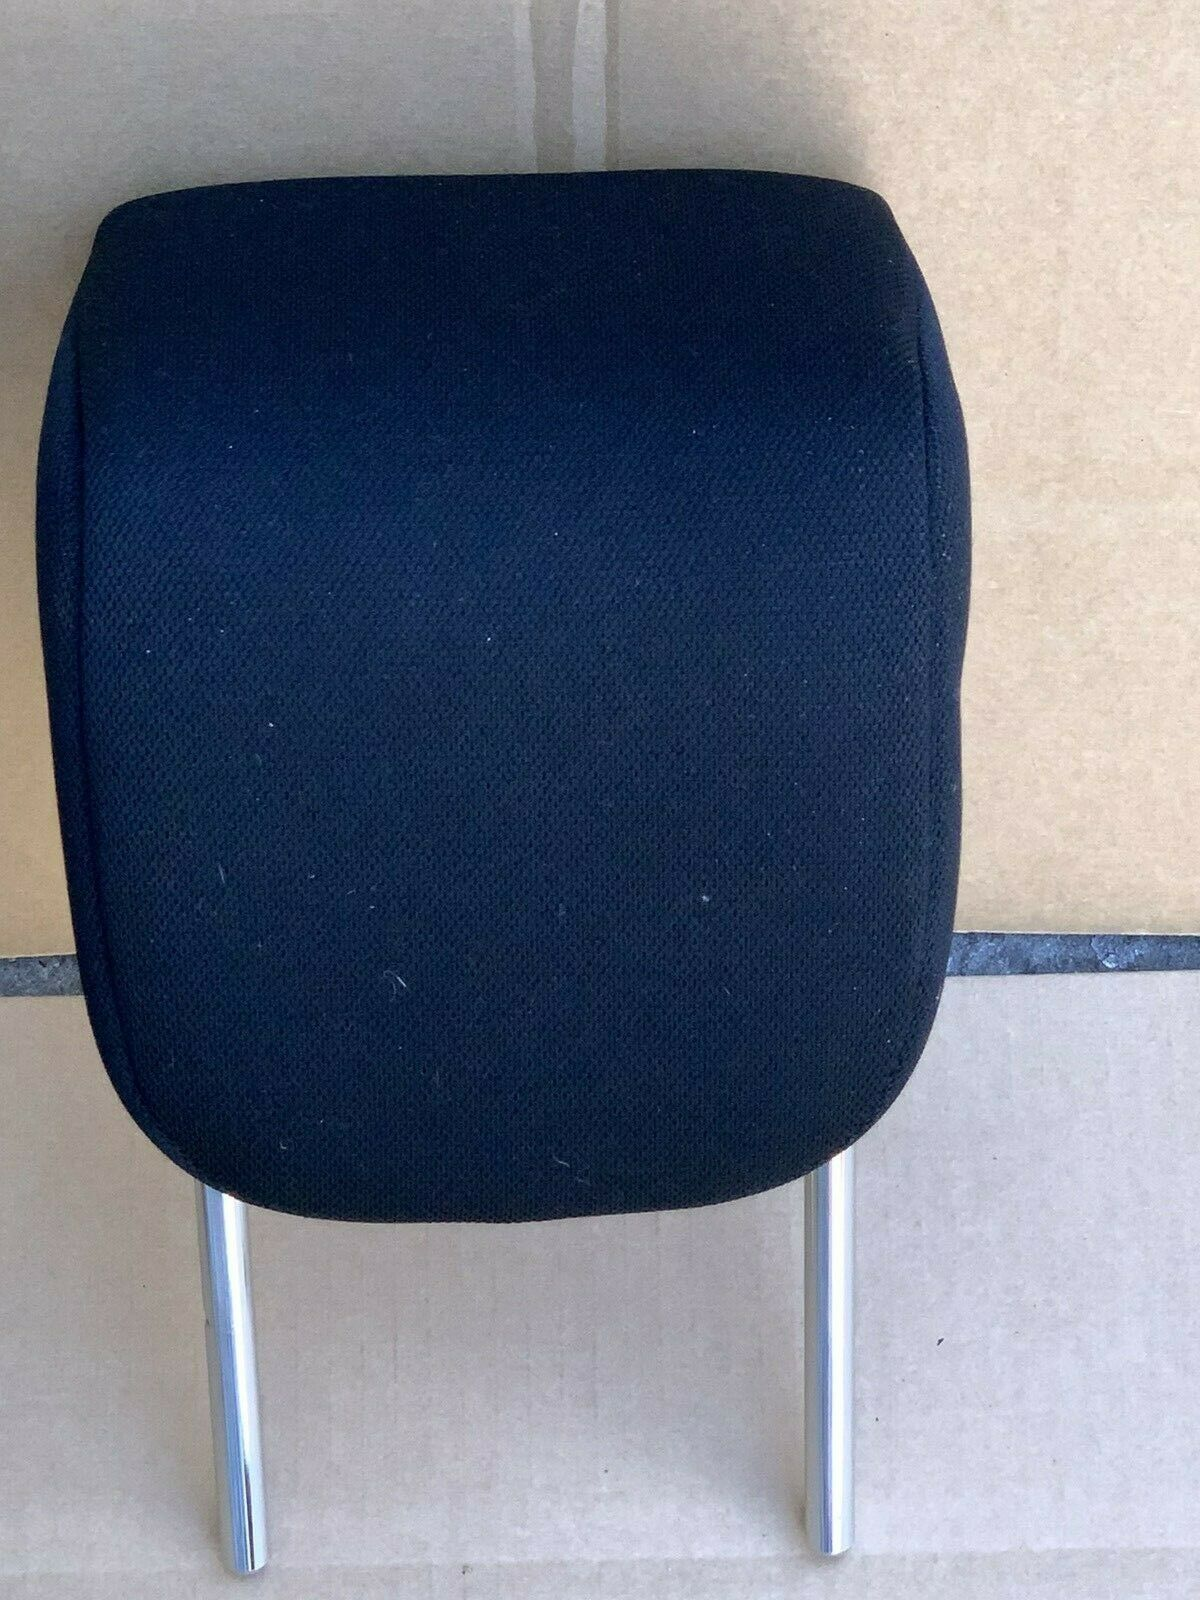 08-10 Scion Xd Rear Headrest Head Rest Black Cloth Rear